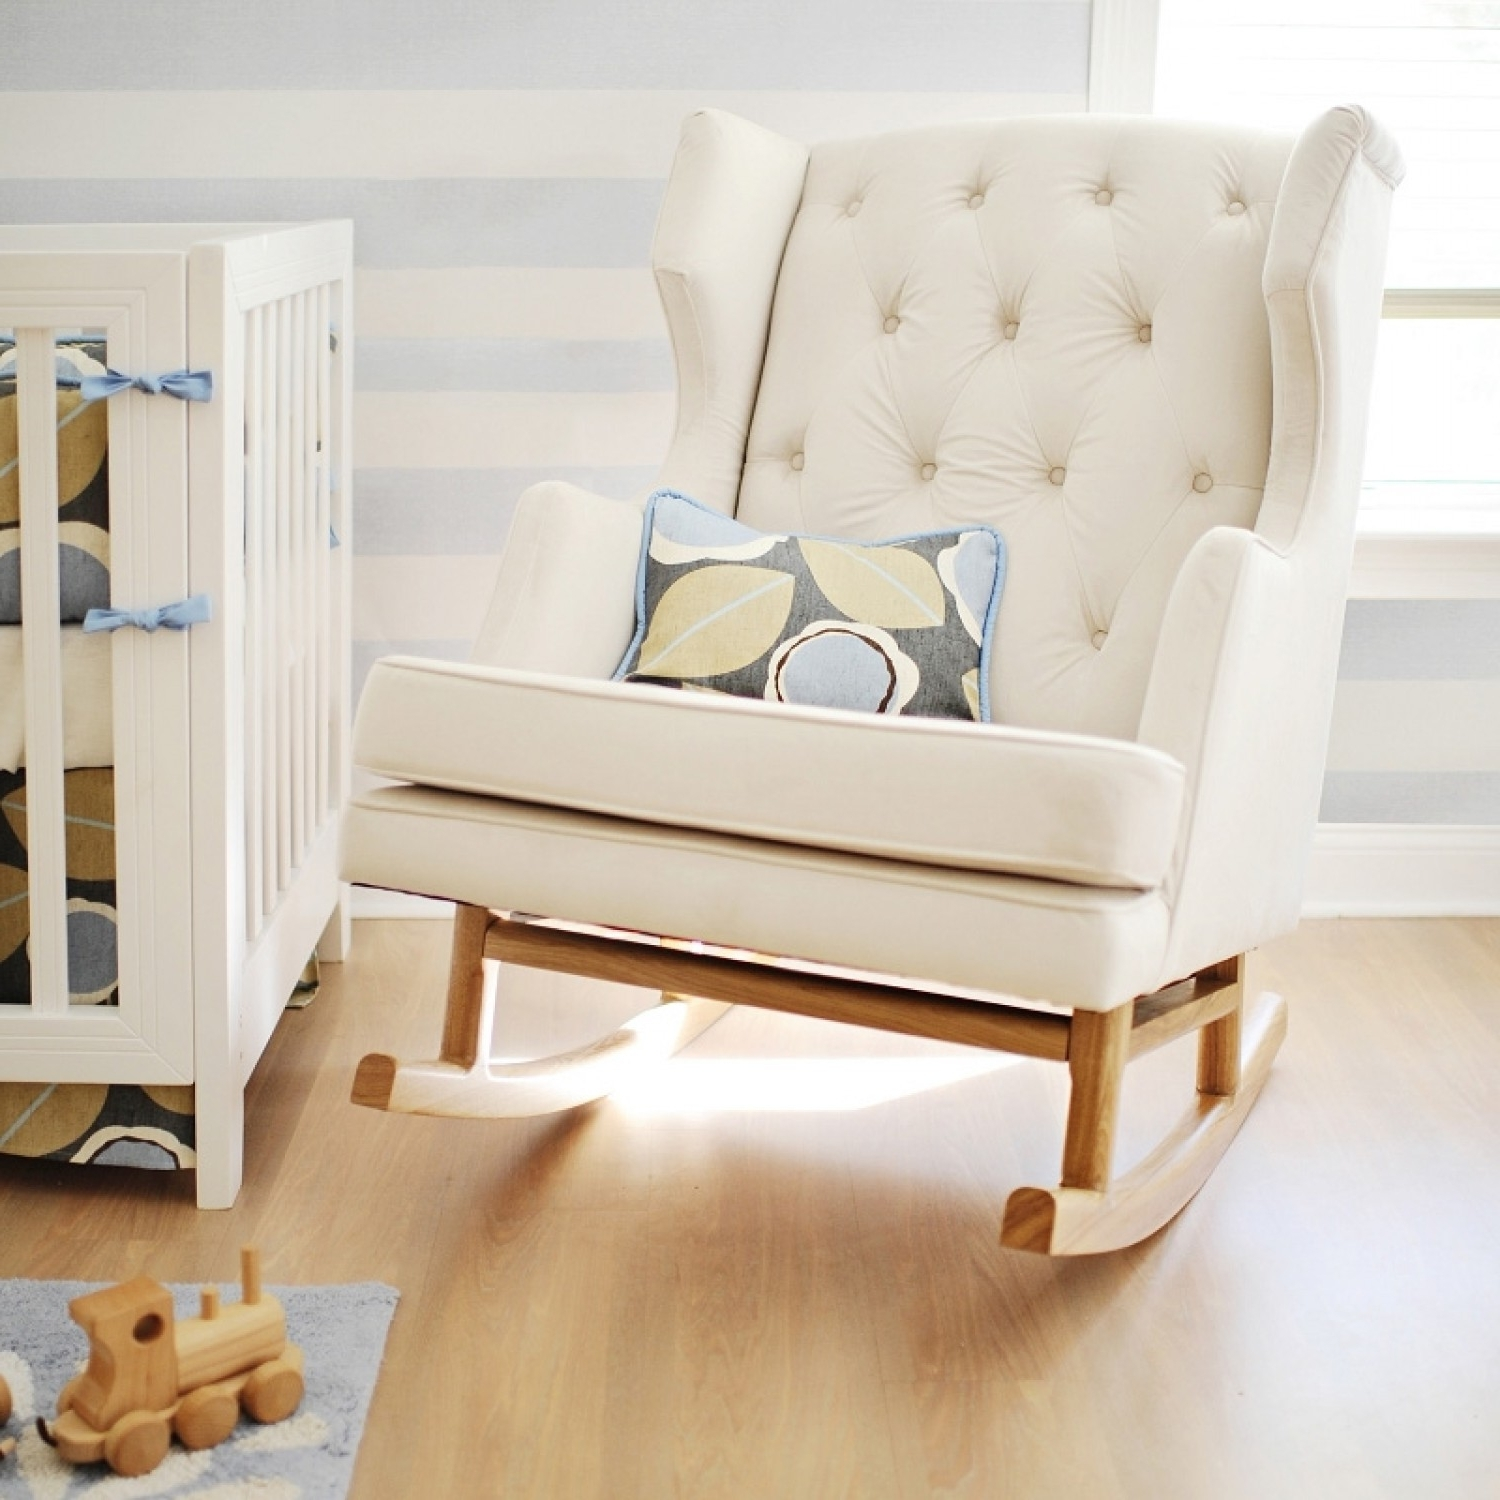 Most Popular White Wicker Rocking Chair For Nursery Pertaining To Bedroom : Furniture Traditional Bedroom Chair Magnificent Wicker (View 8 of 15)